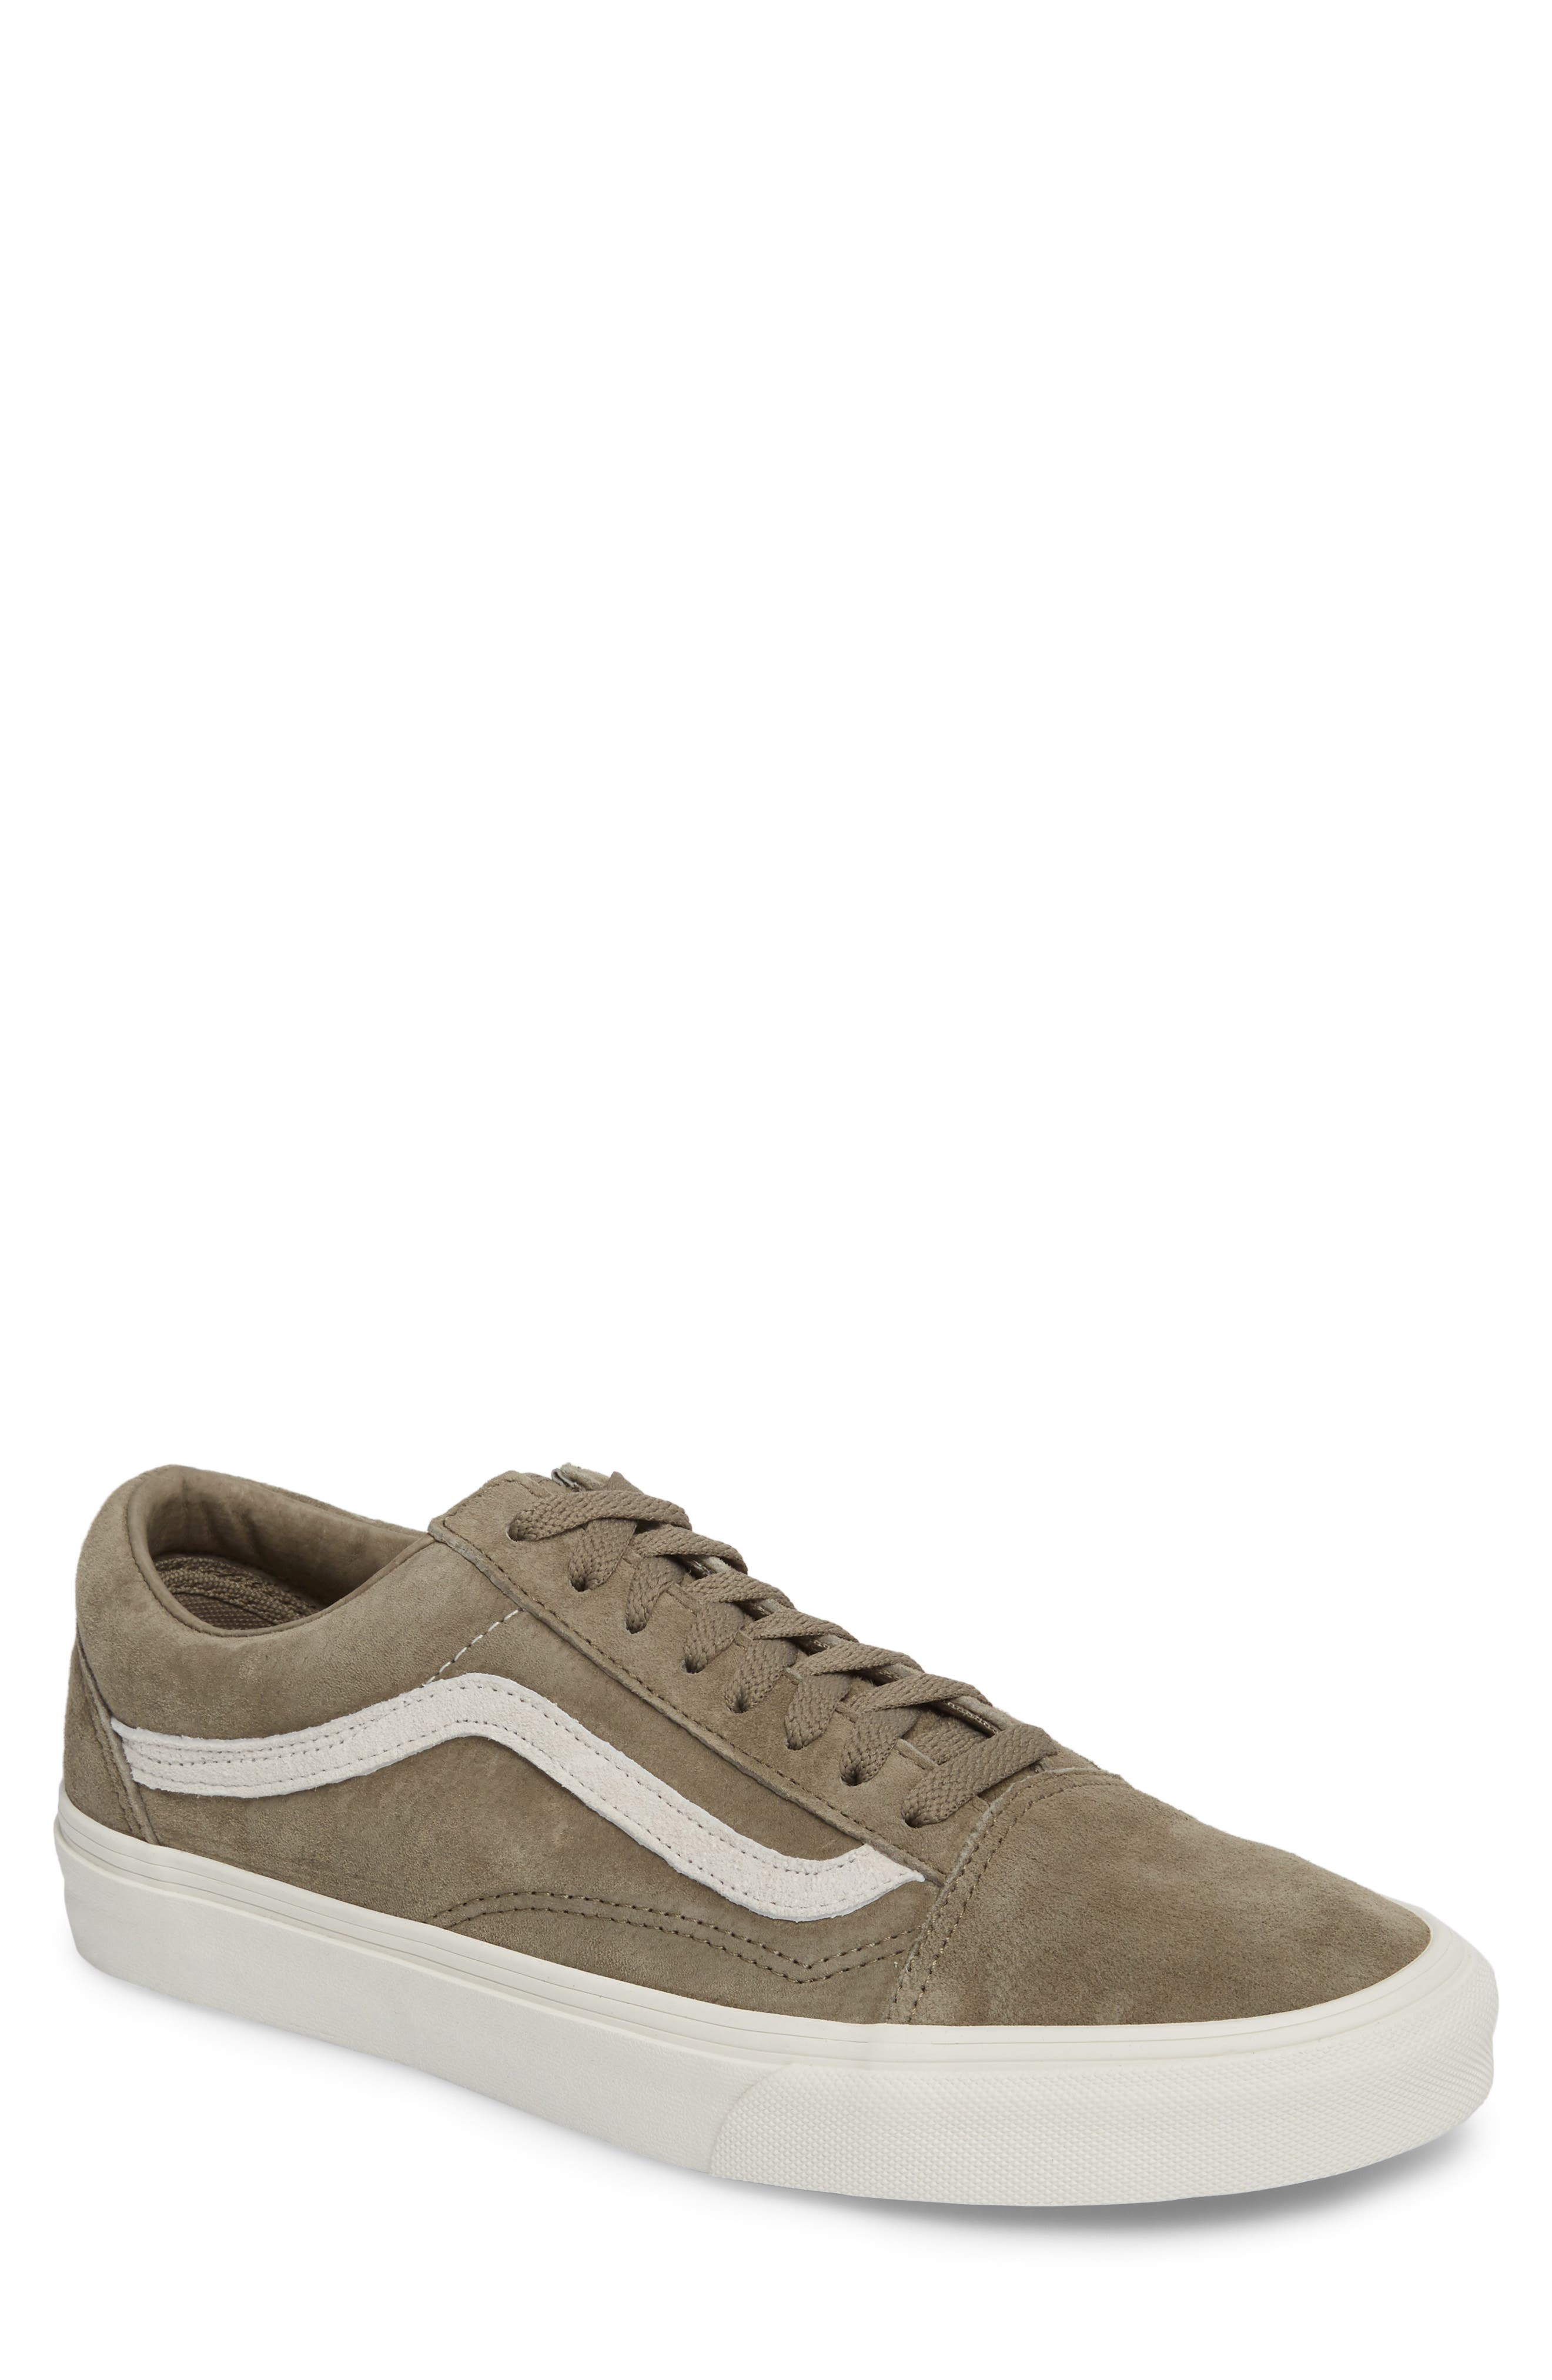 Vans Suede Old Skool Sneaker (Men)